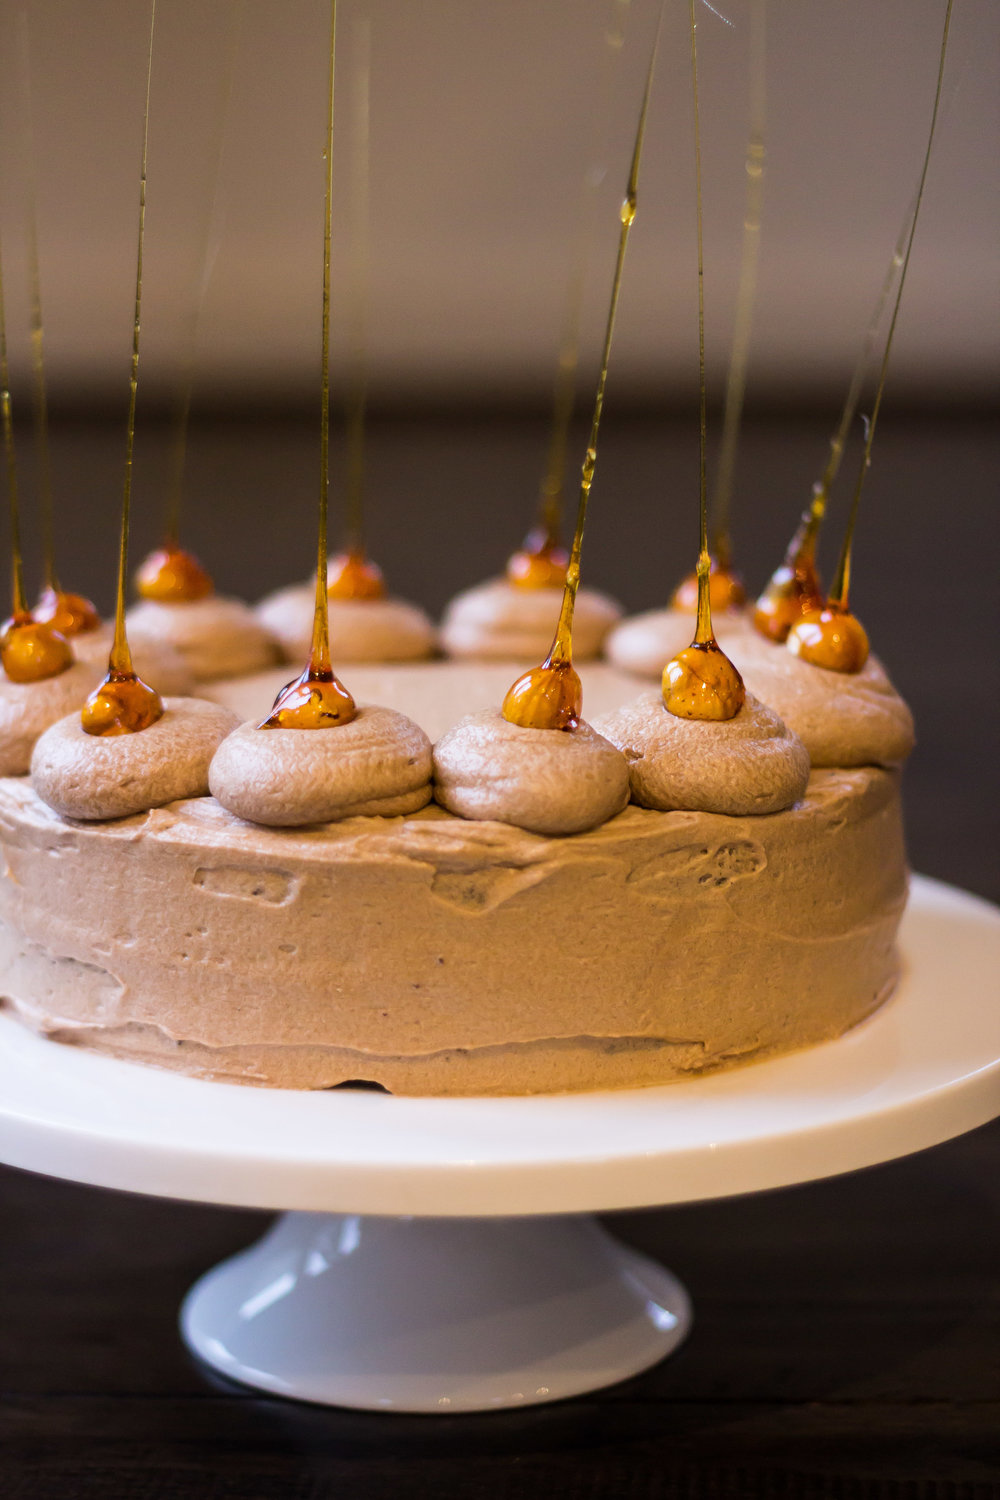 Chocolate Hazelnut Cake with Mocha Buttercream and Toffee Hazelnuts -